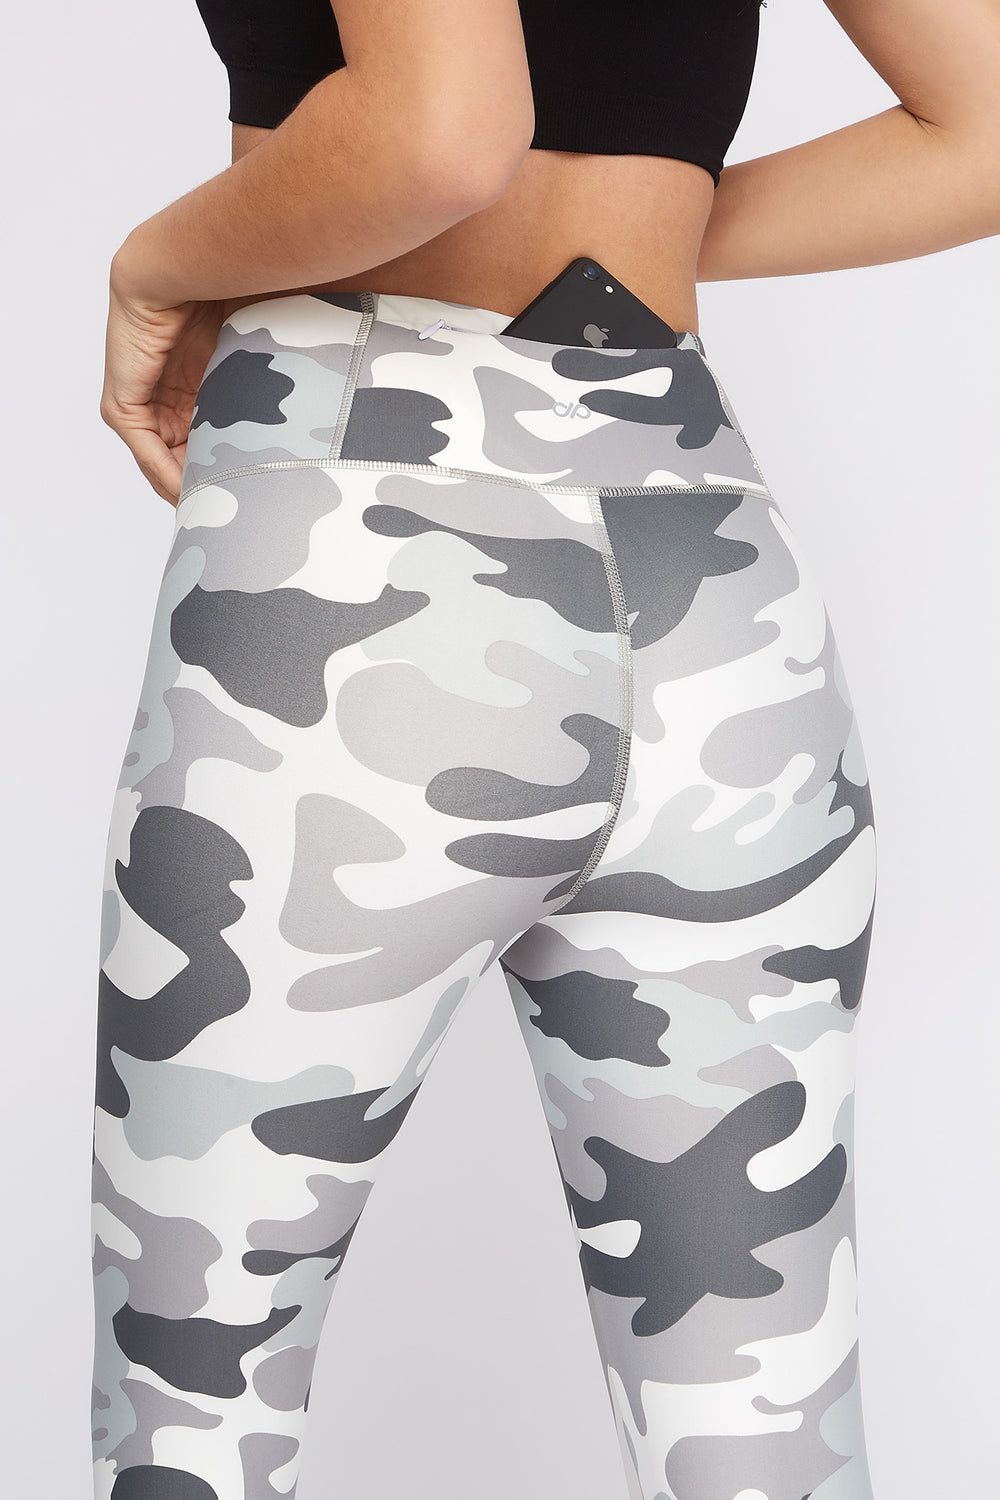 Infinite Camo High-Rise Active Legging Camouflage